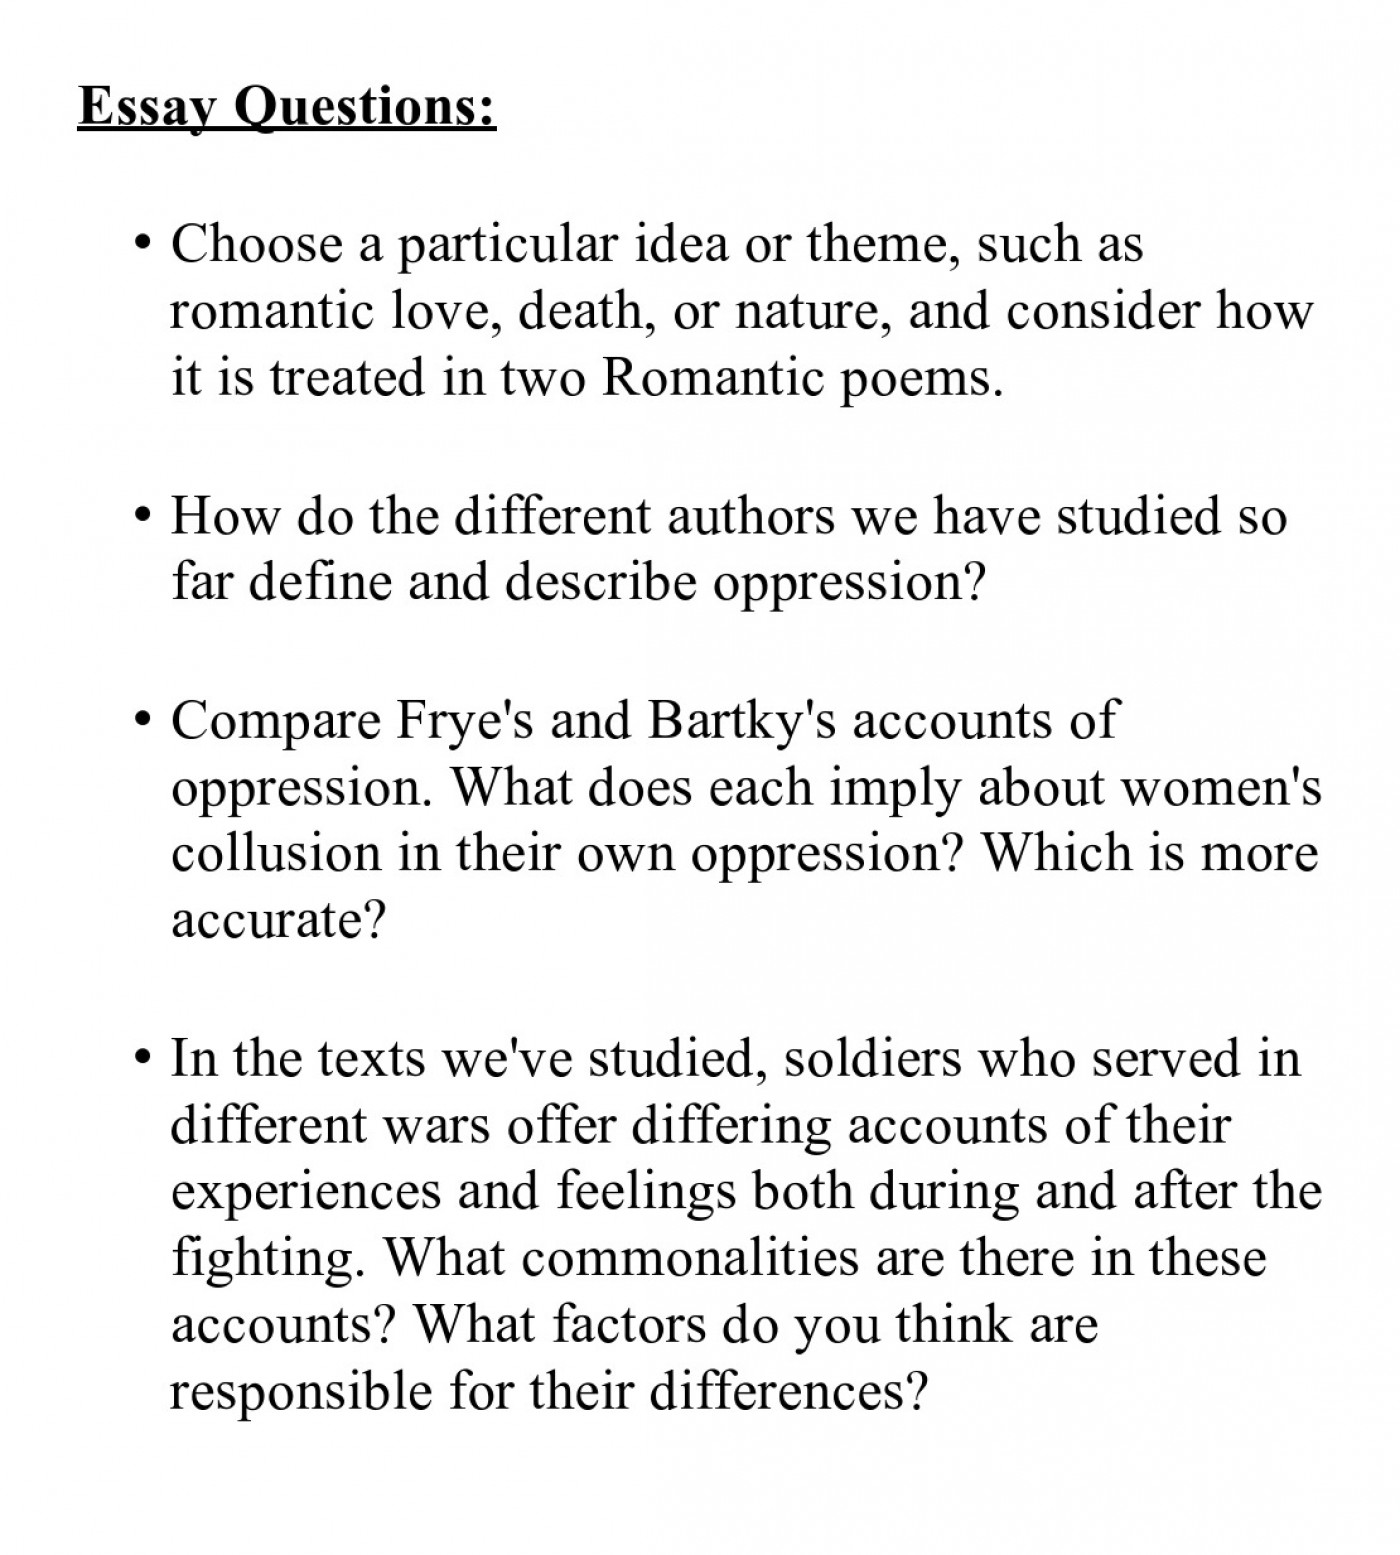 007 Essay Example Prompts Questions Best Narrative College Topics For Lord Of The Flies Creative Writing 1400